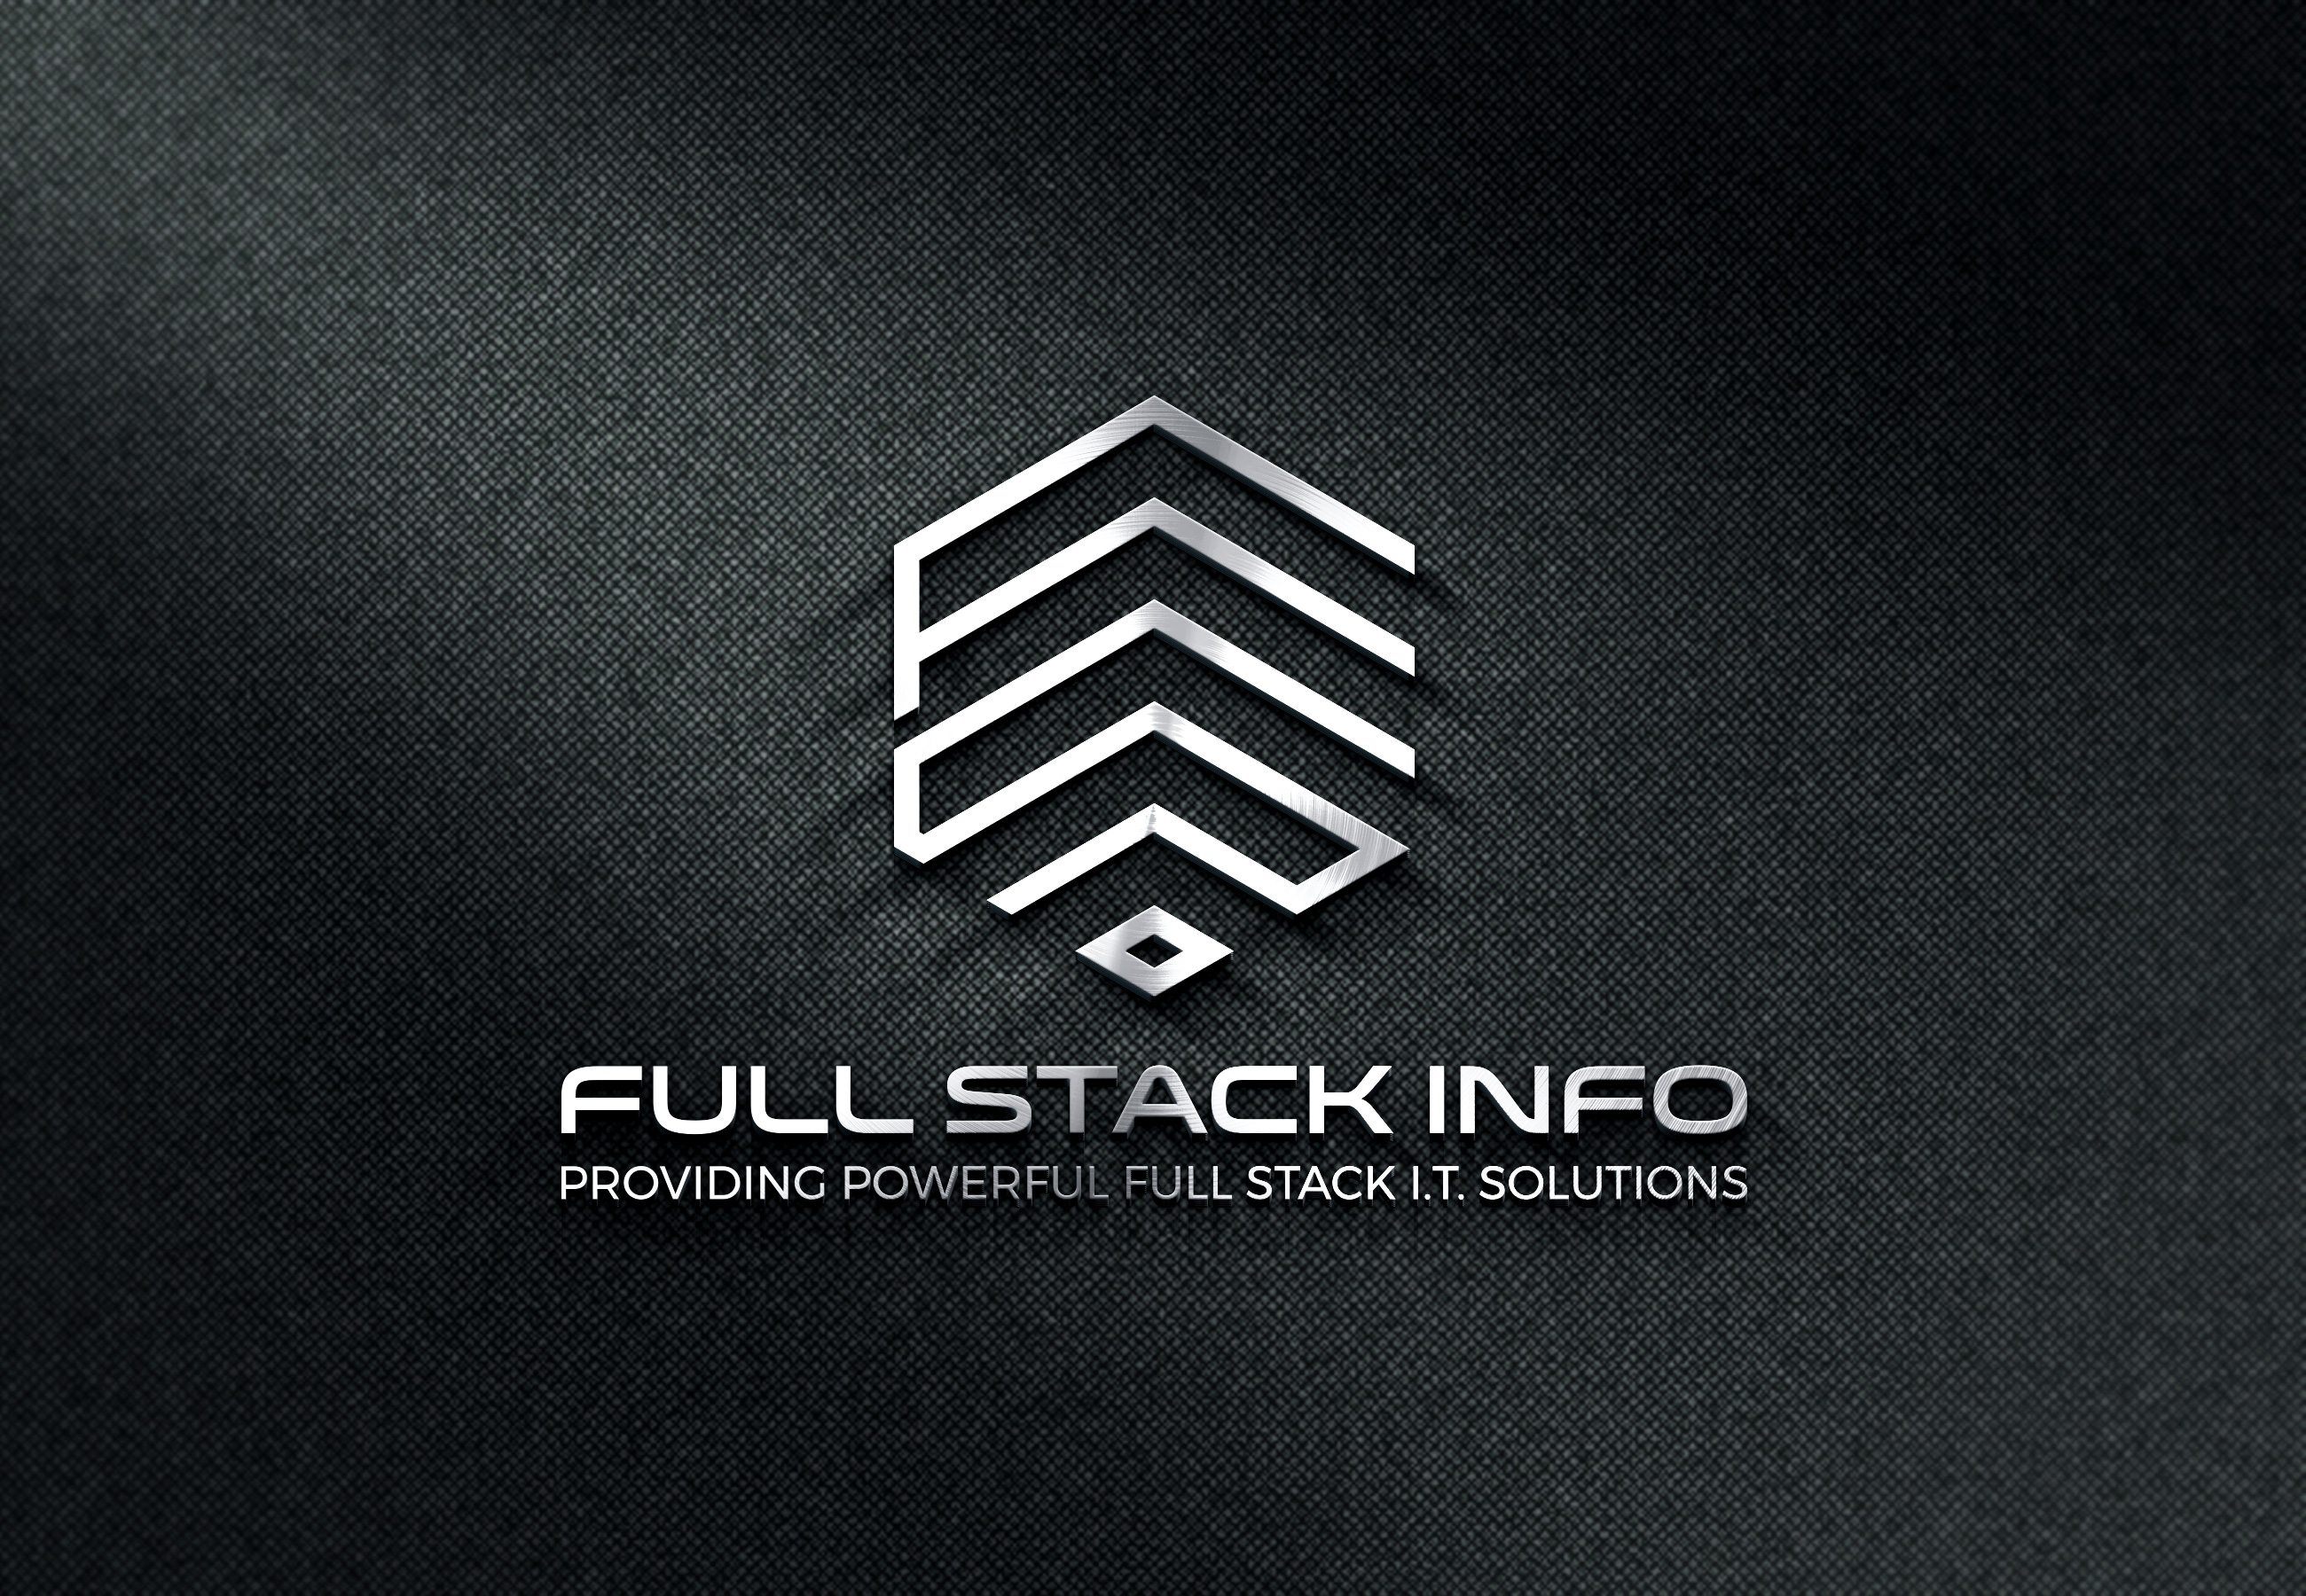 Full Stack Info LLC image